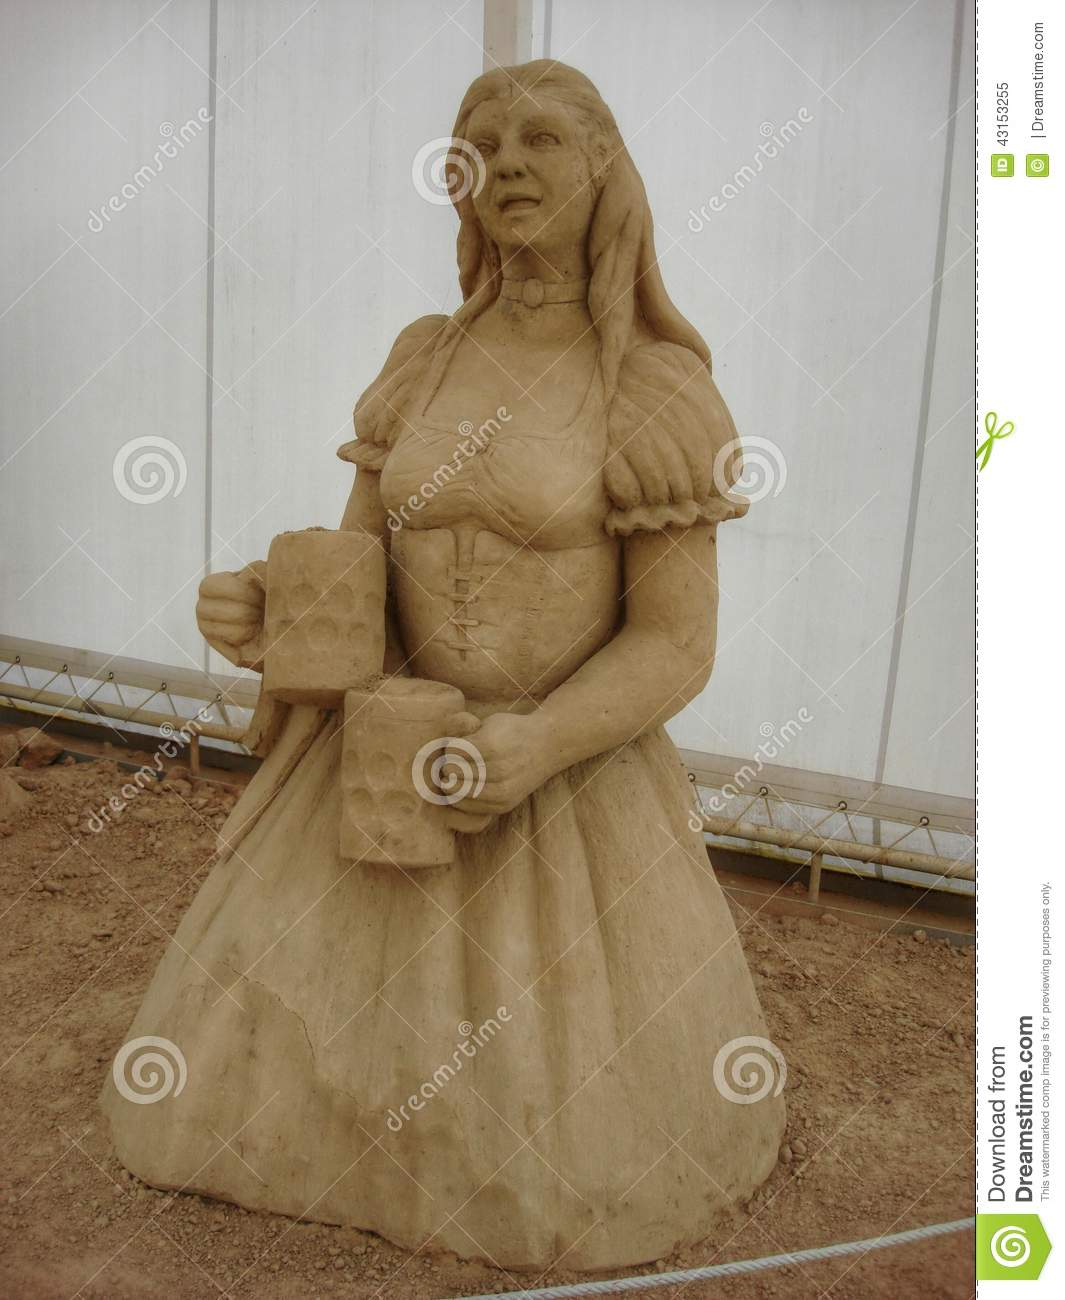 Sand sculpture stock image. Image of sand, sculpture ...